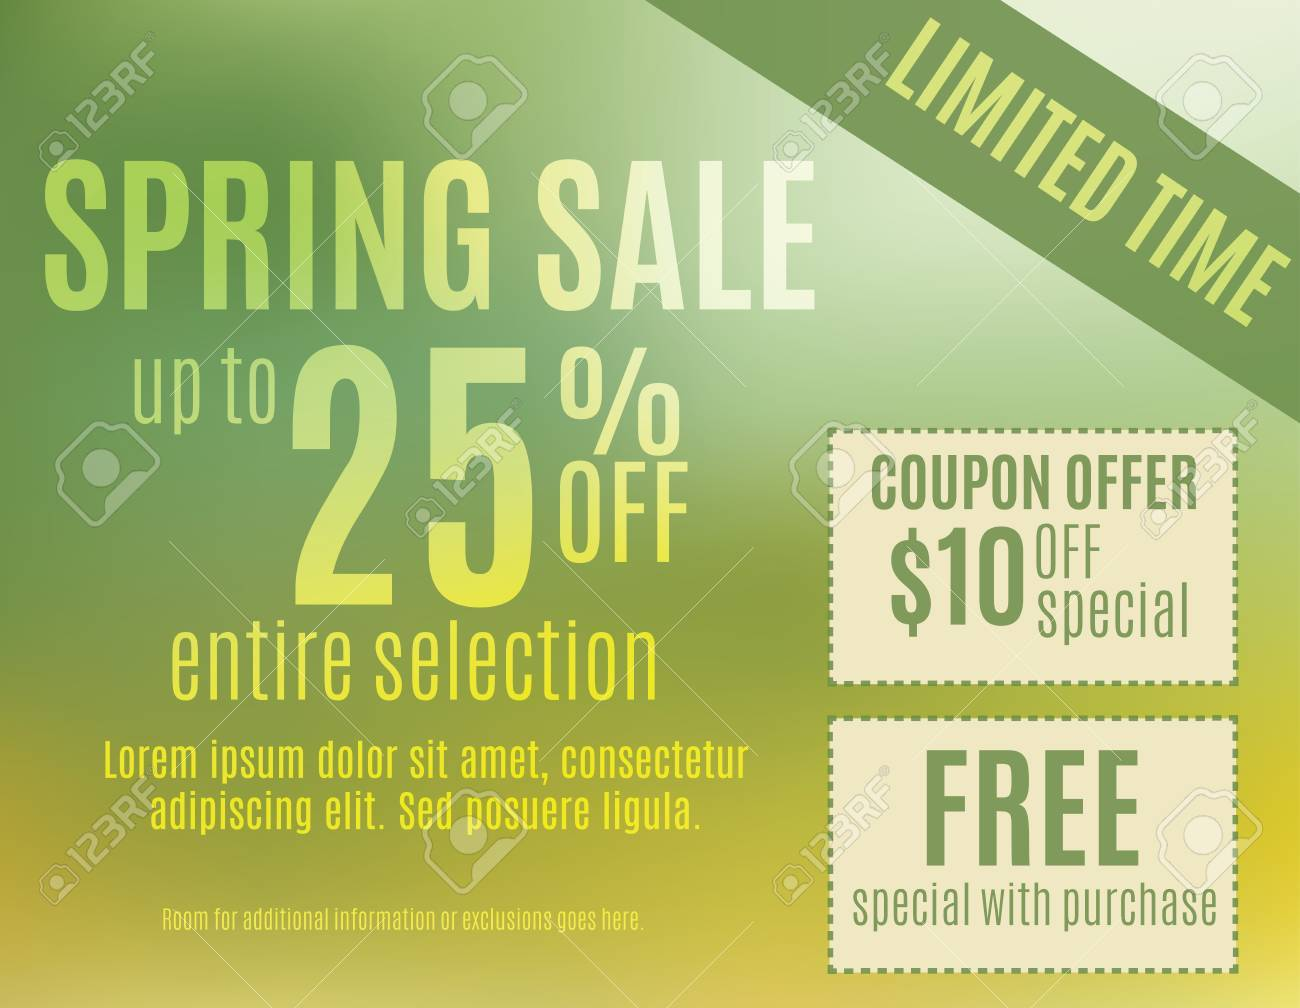 Green And Yellow Spring Event Sale Postcard Template Royalty Free - Event postcard template